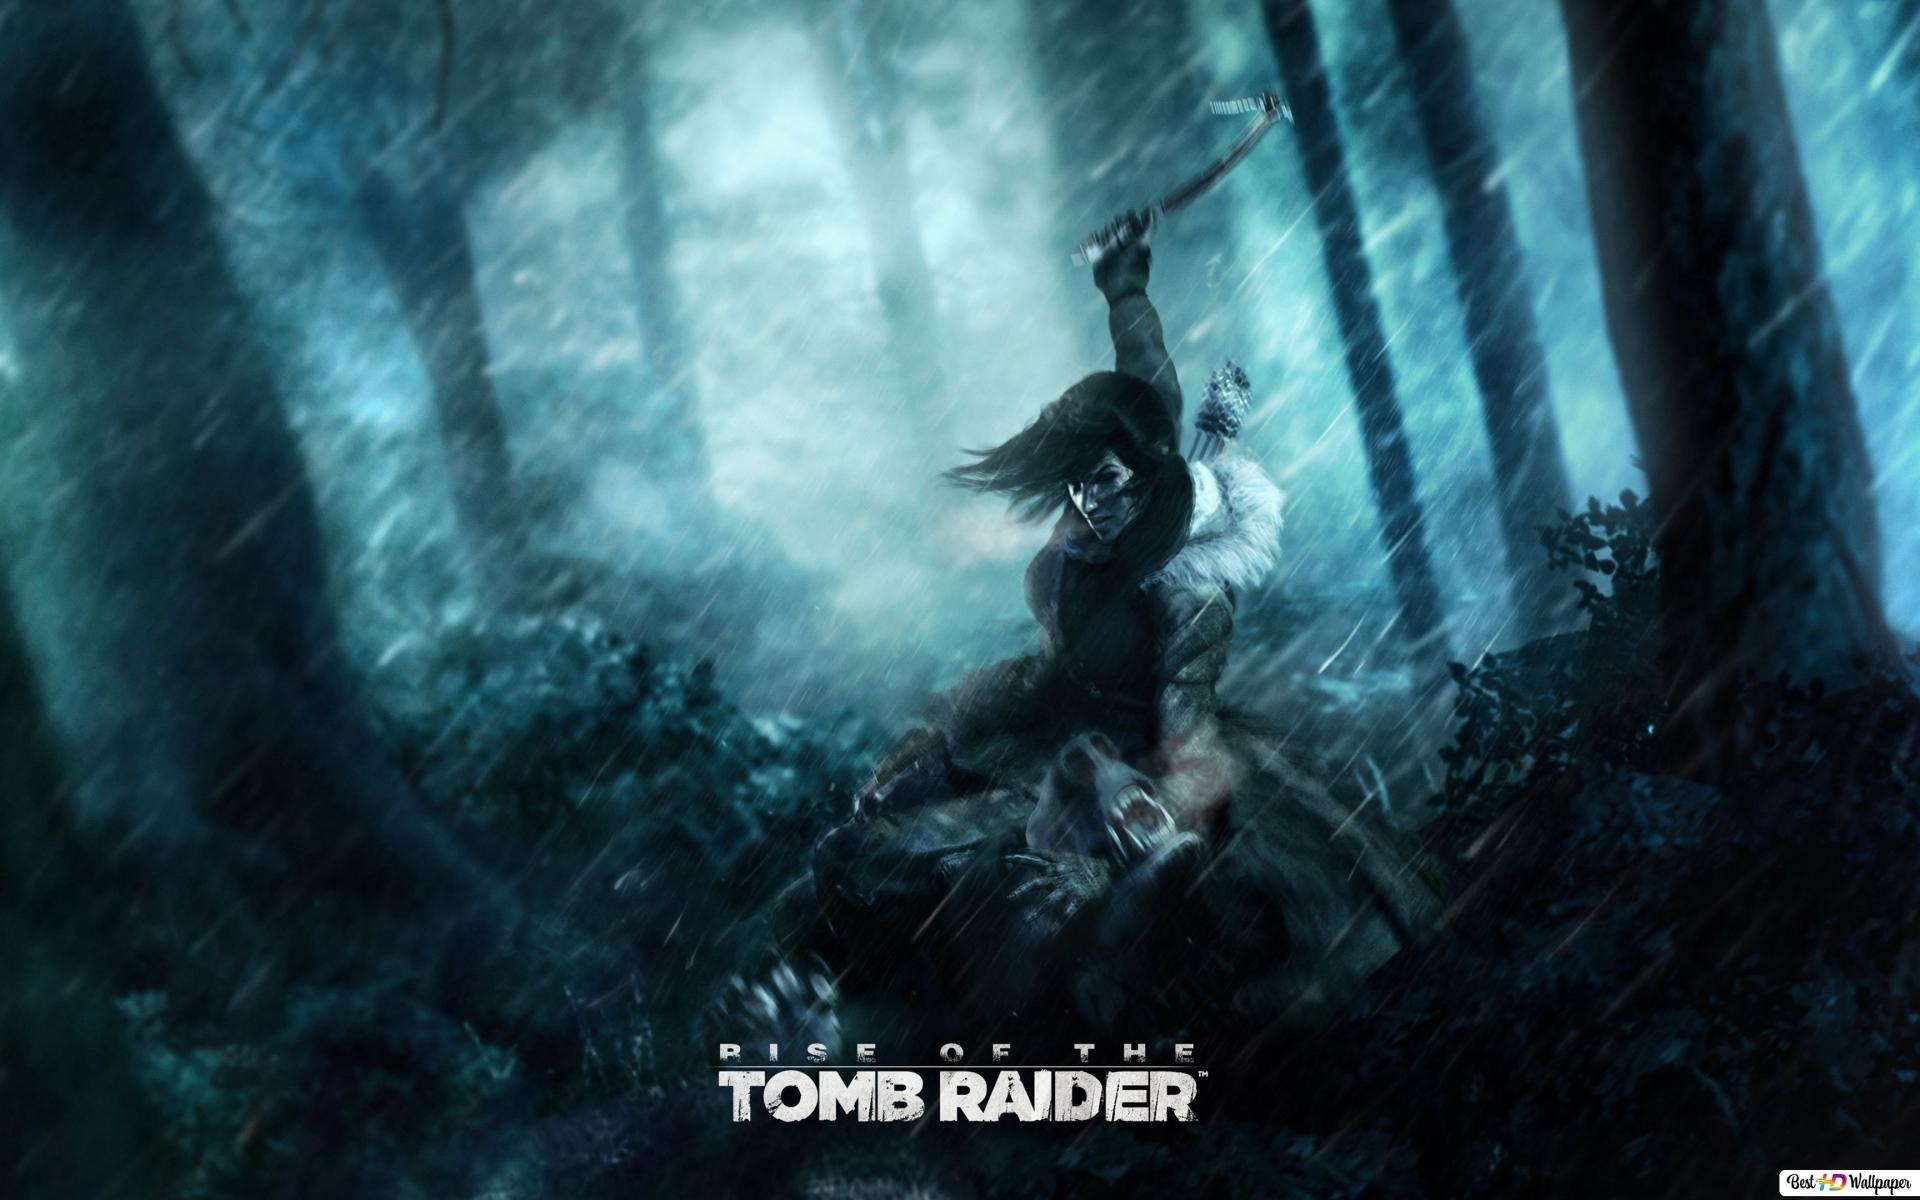 Rise Of The Tomb Raider Wallpapers Group With